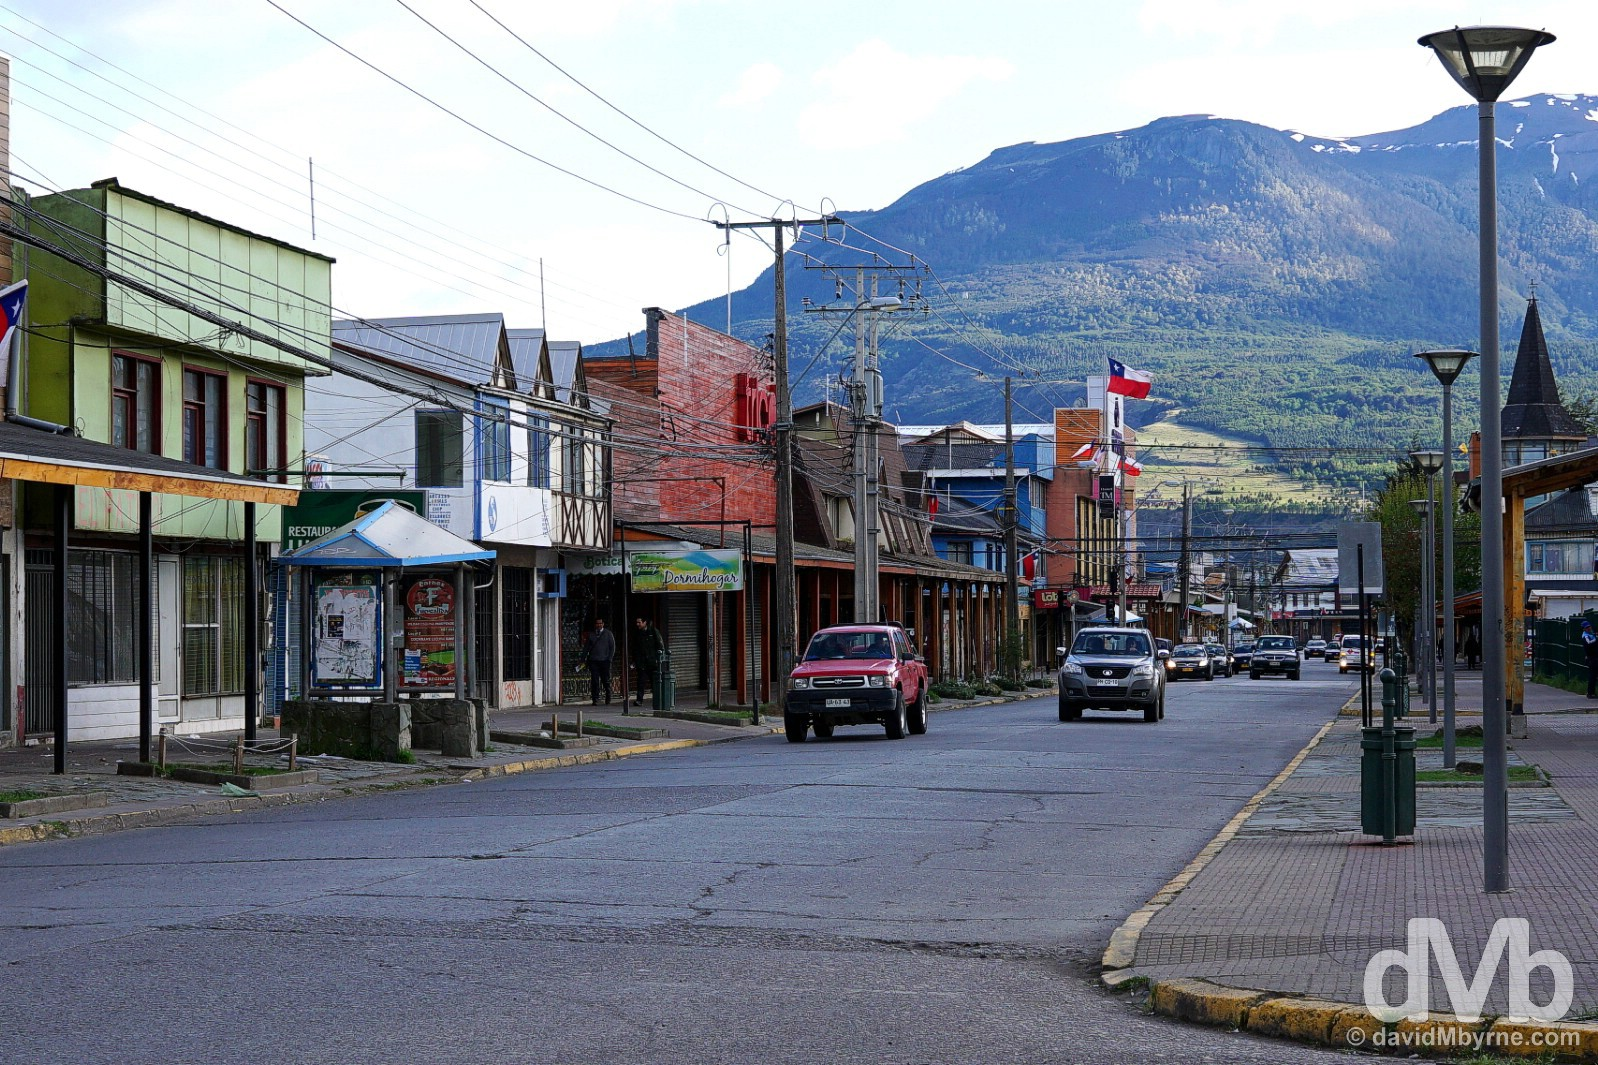 Cochrane, Aysen, Chile. October 27, 2015.